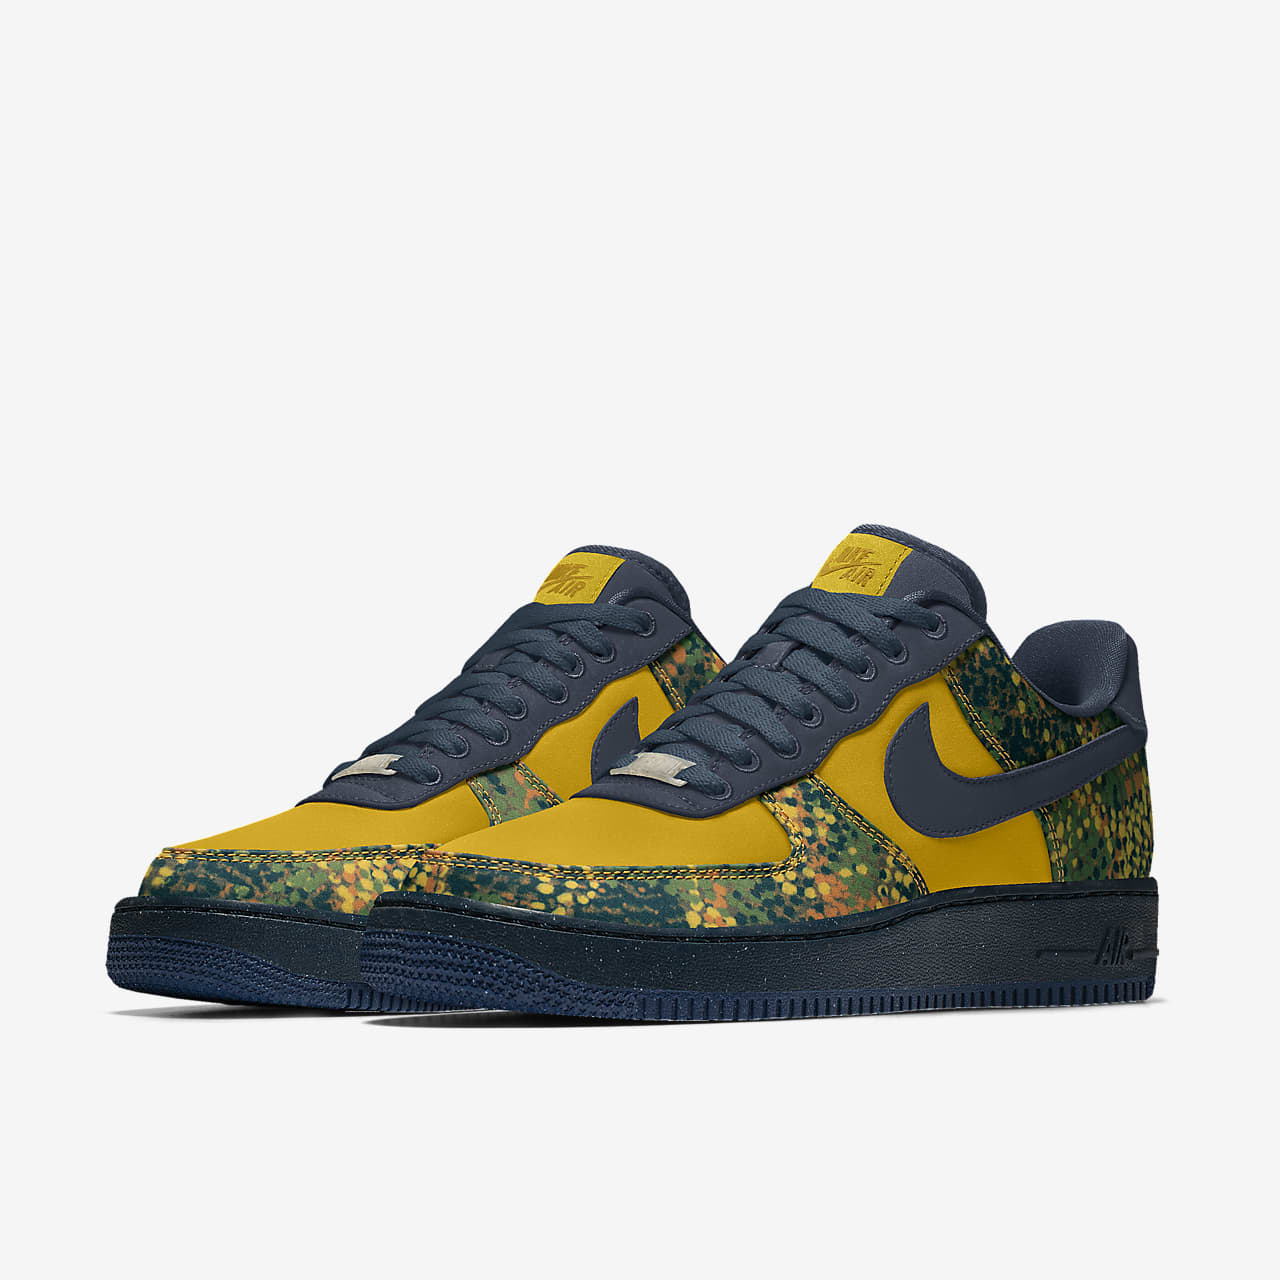 Chaussure lifestyle personnalisable Nike Air Force 1 Unlocked By You pour Femme